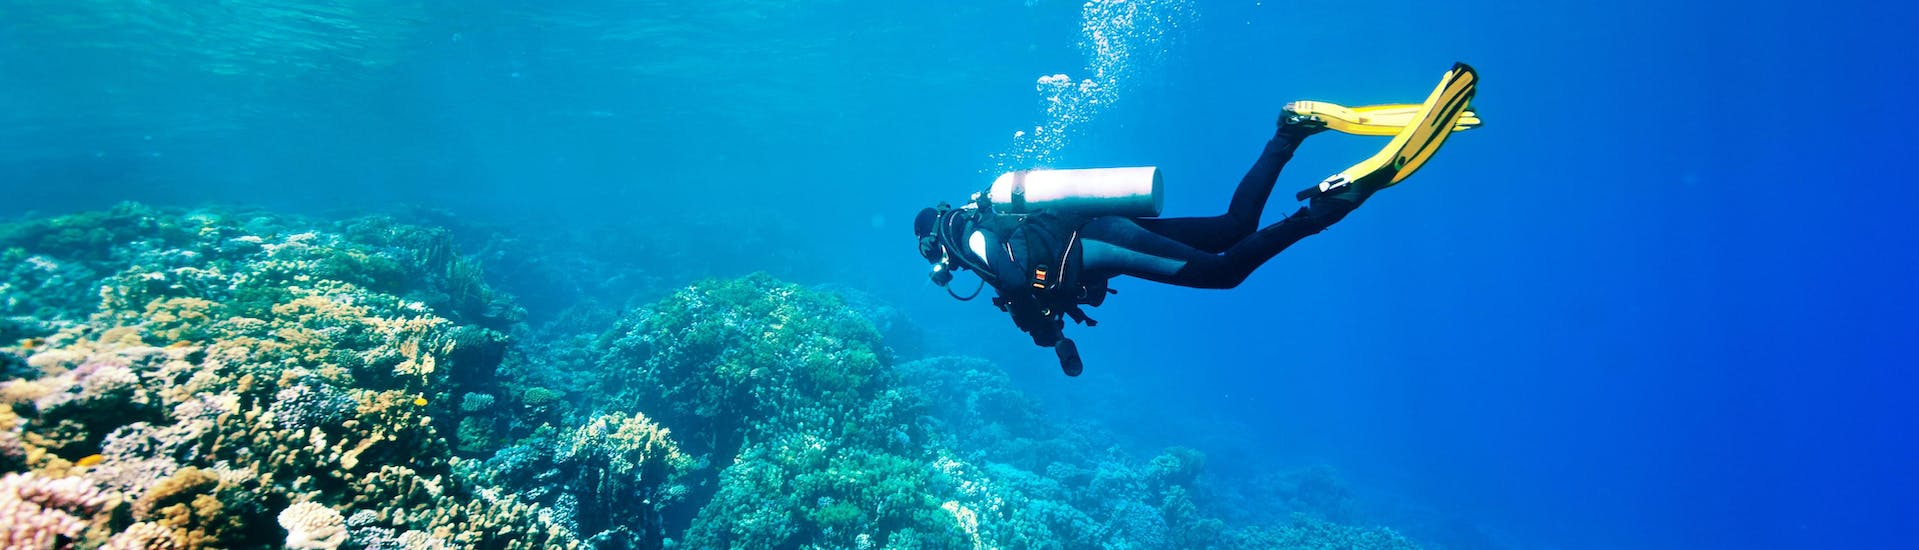 A scuba diver is exploring a reef while scuba diving in the scuba diving destination of Poltu Quatu.